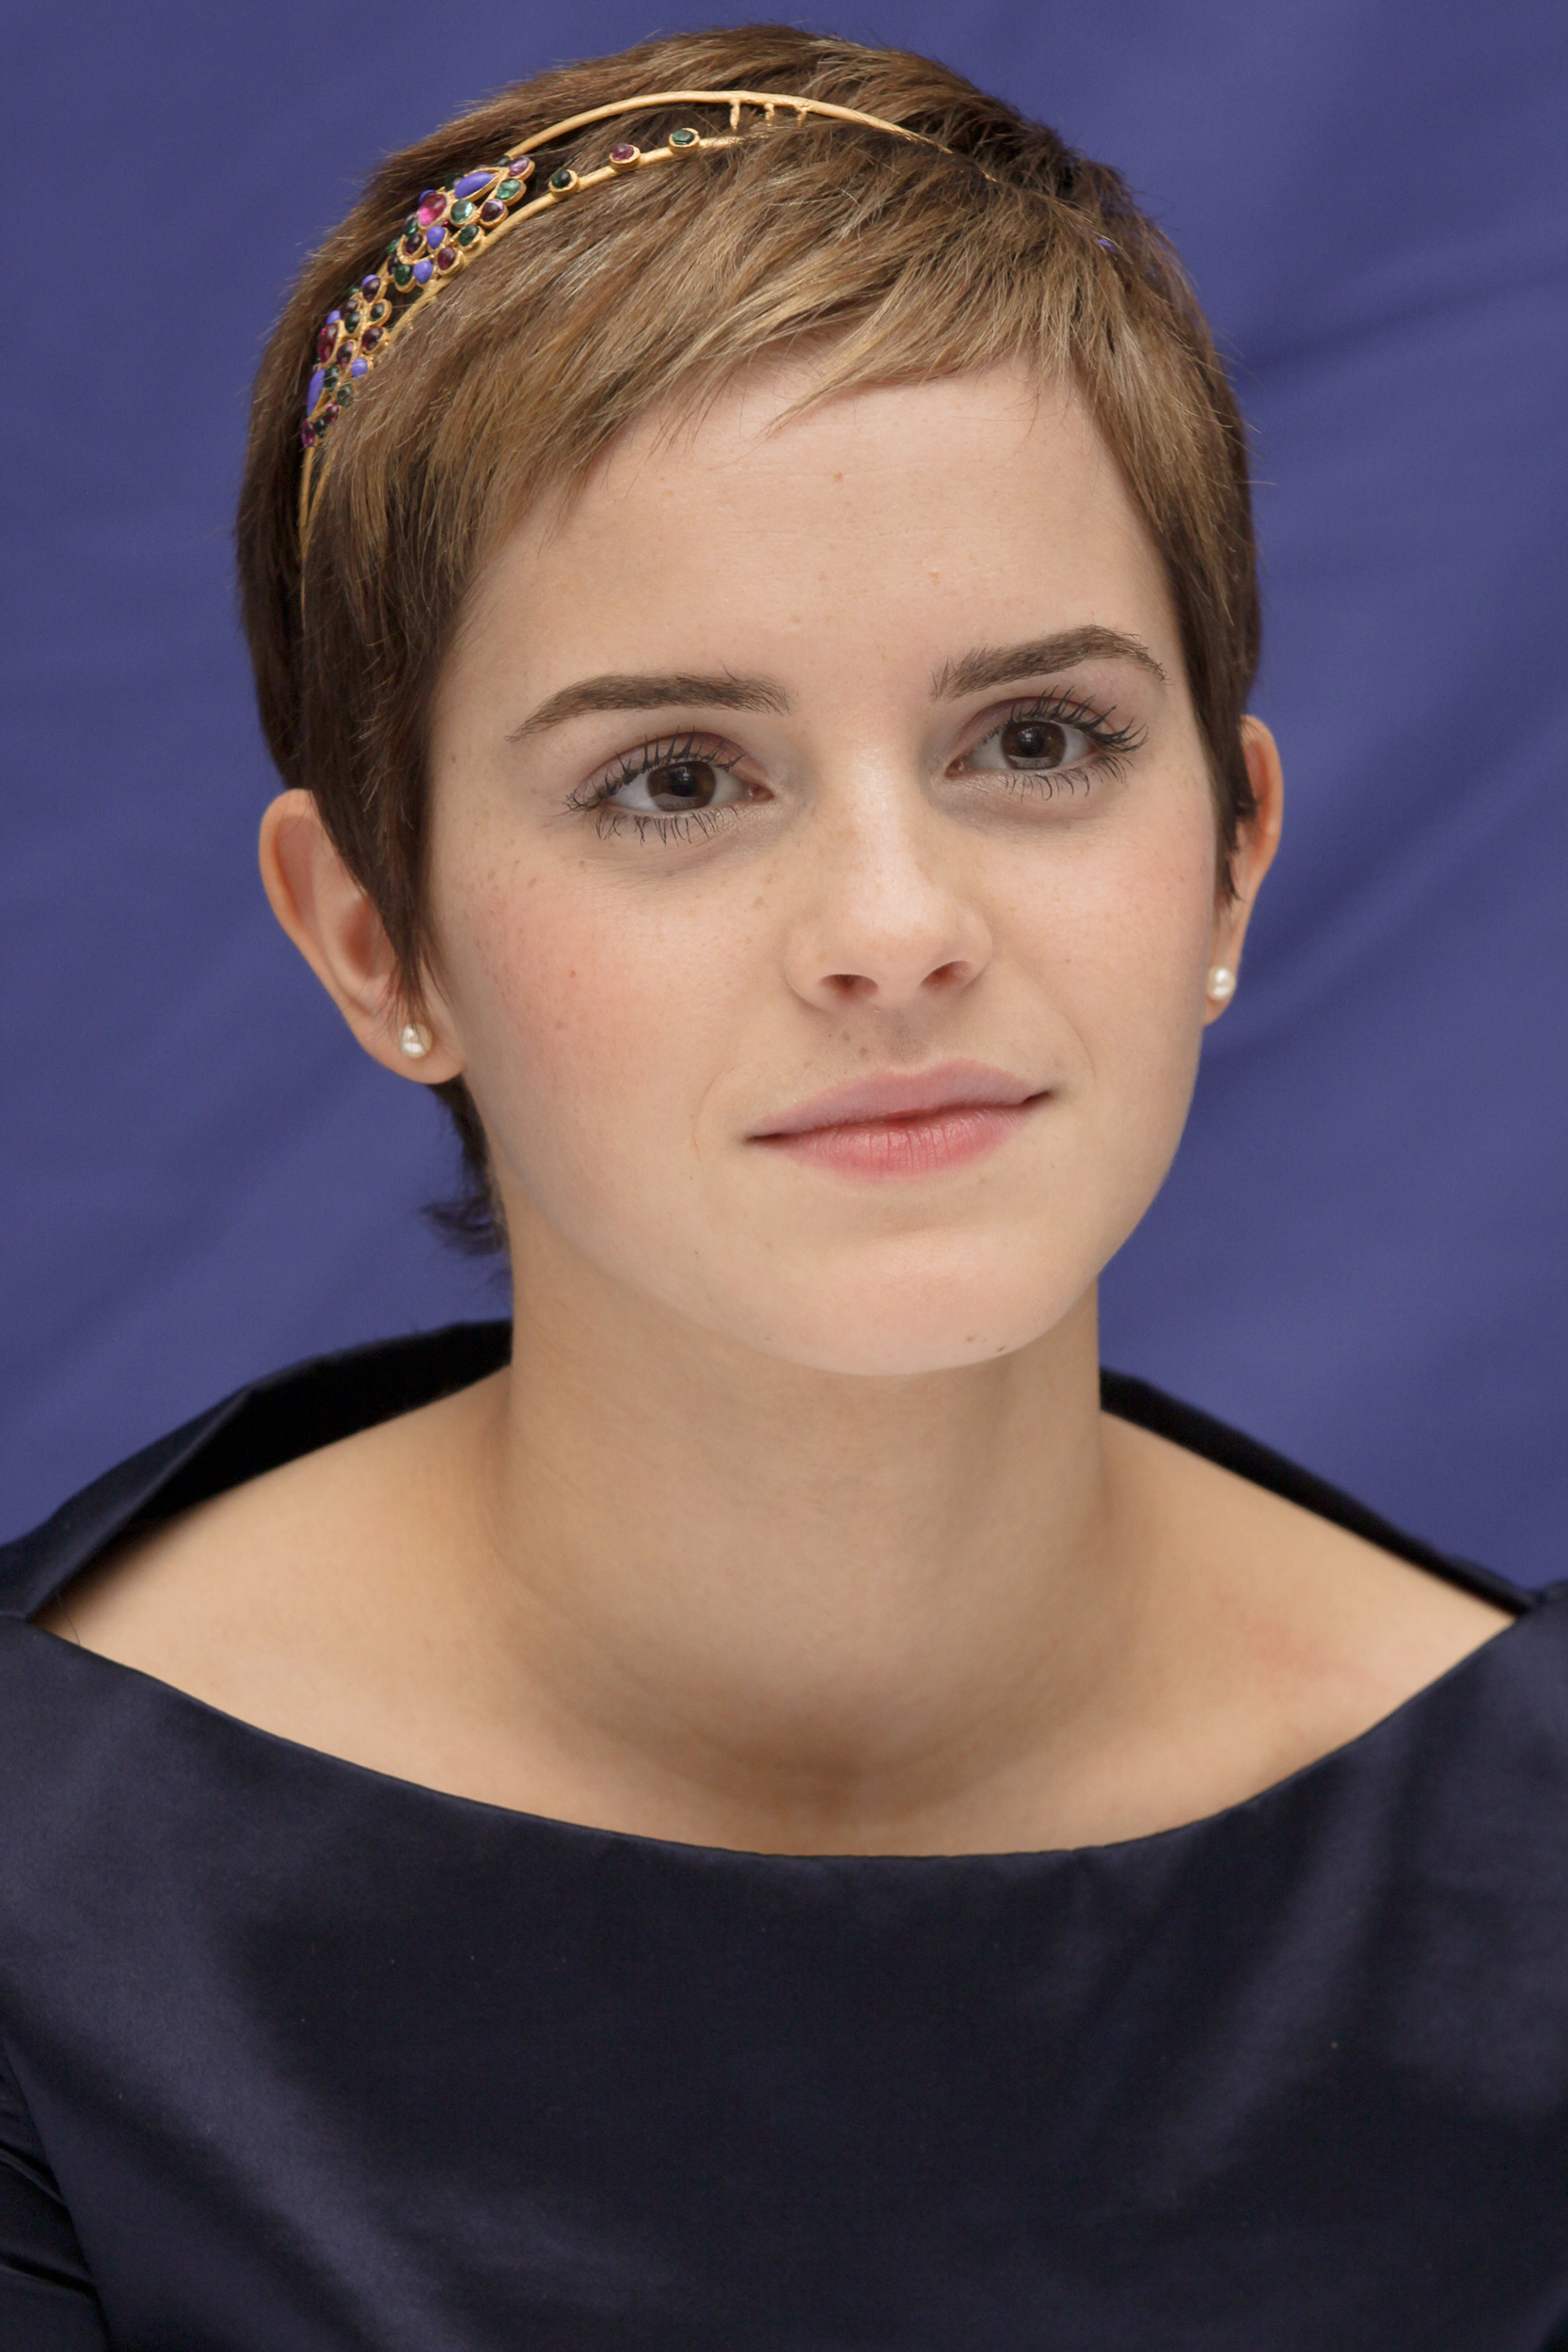 Emma Watson s hair evolution From Harry Potter s Hermione to